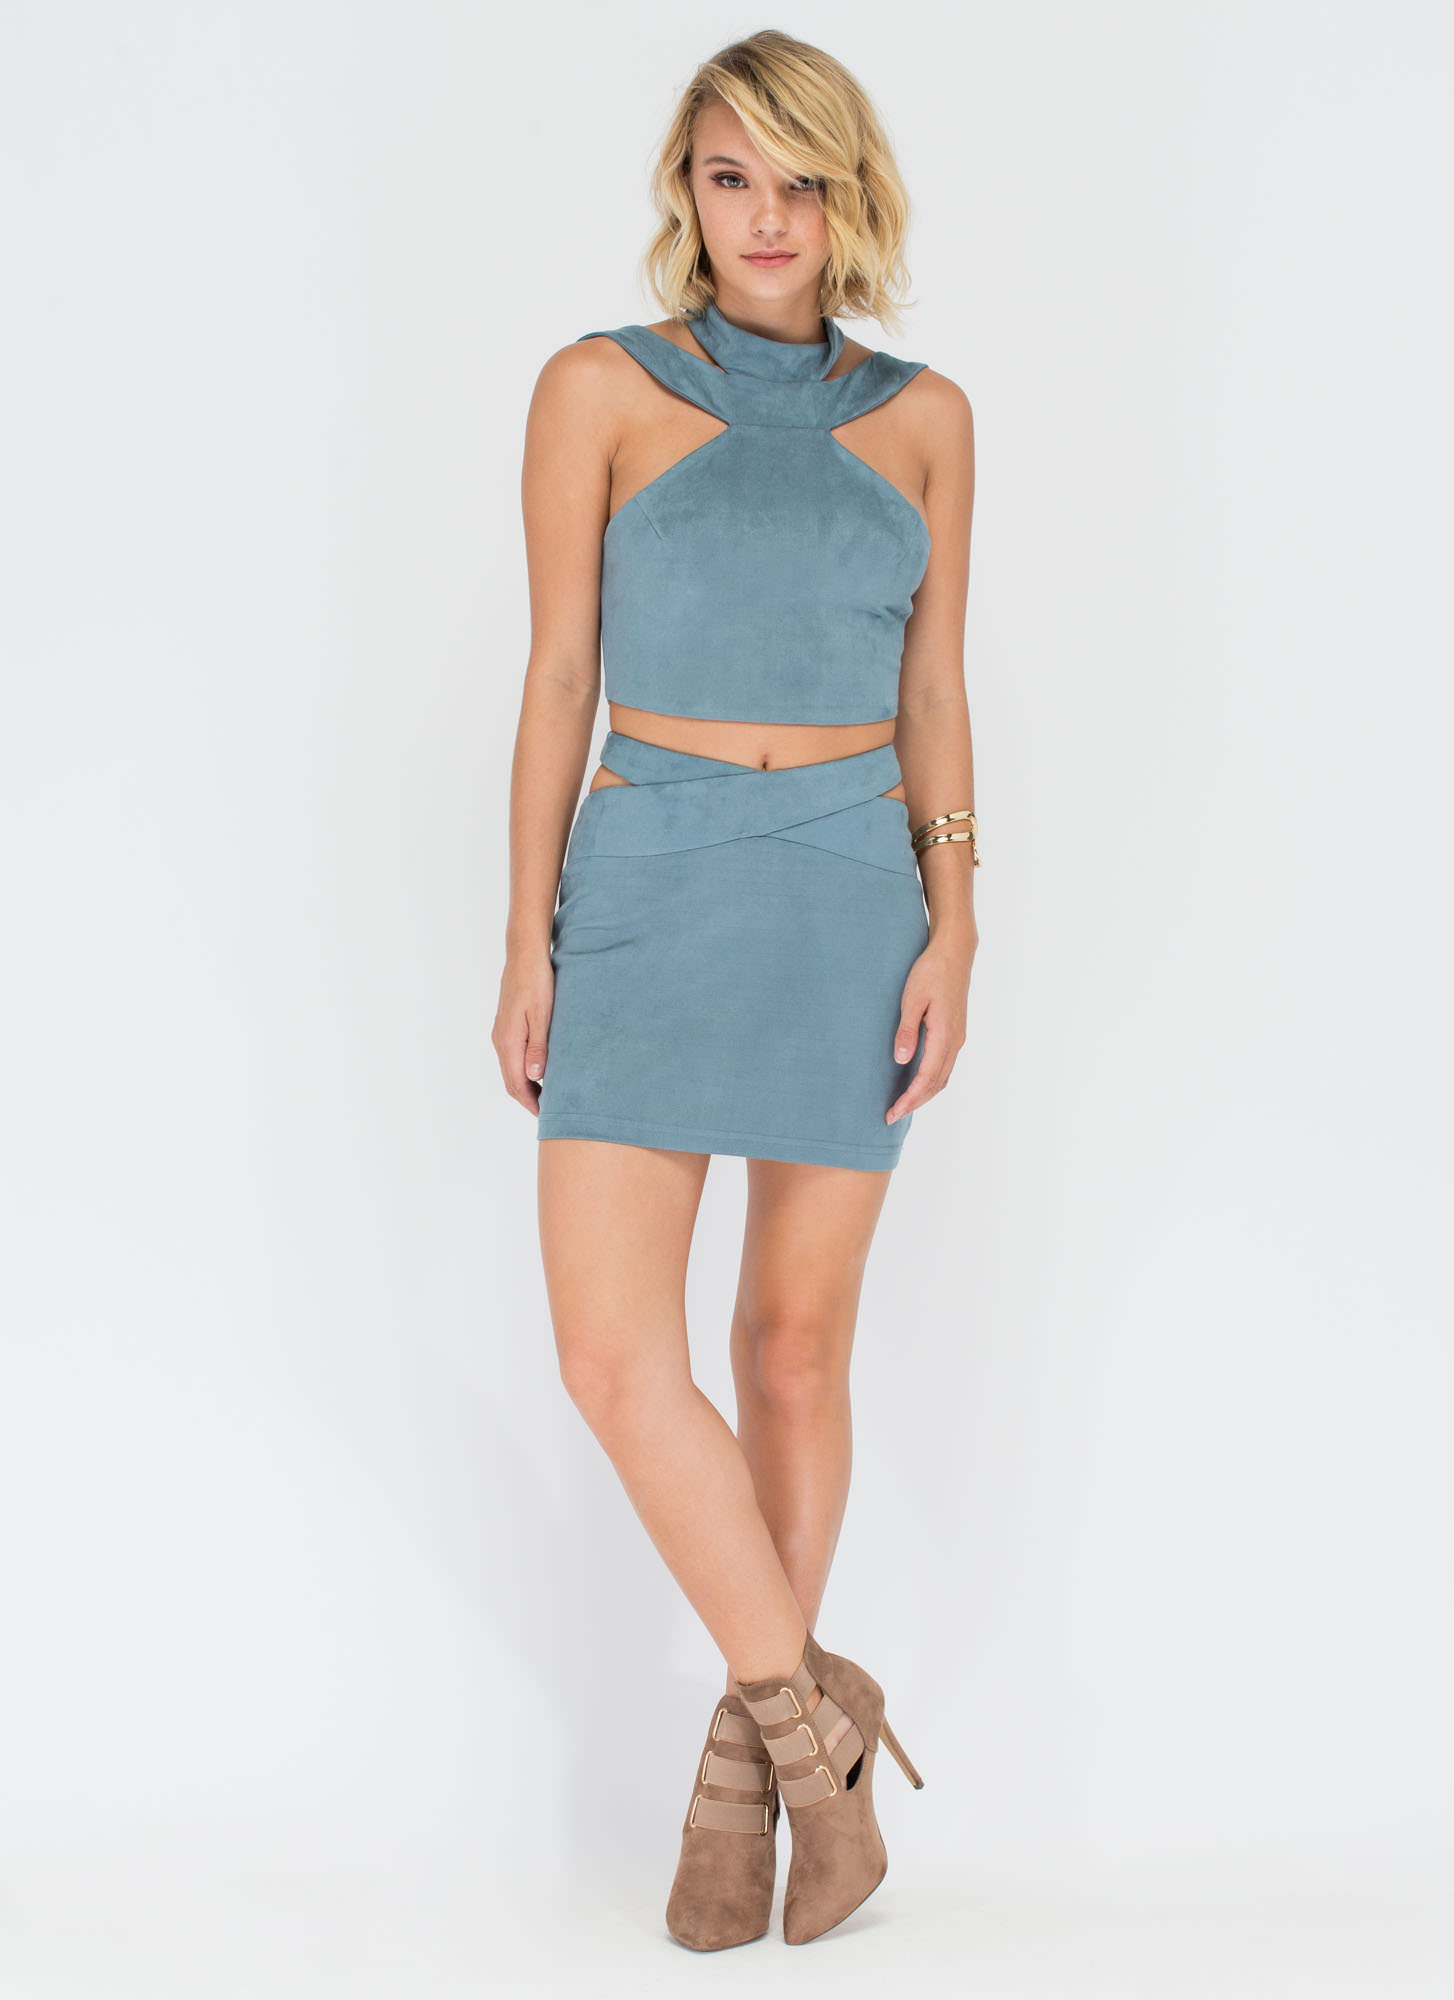 Cross Train Crop Top 'N Skirt Set BLUE